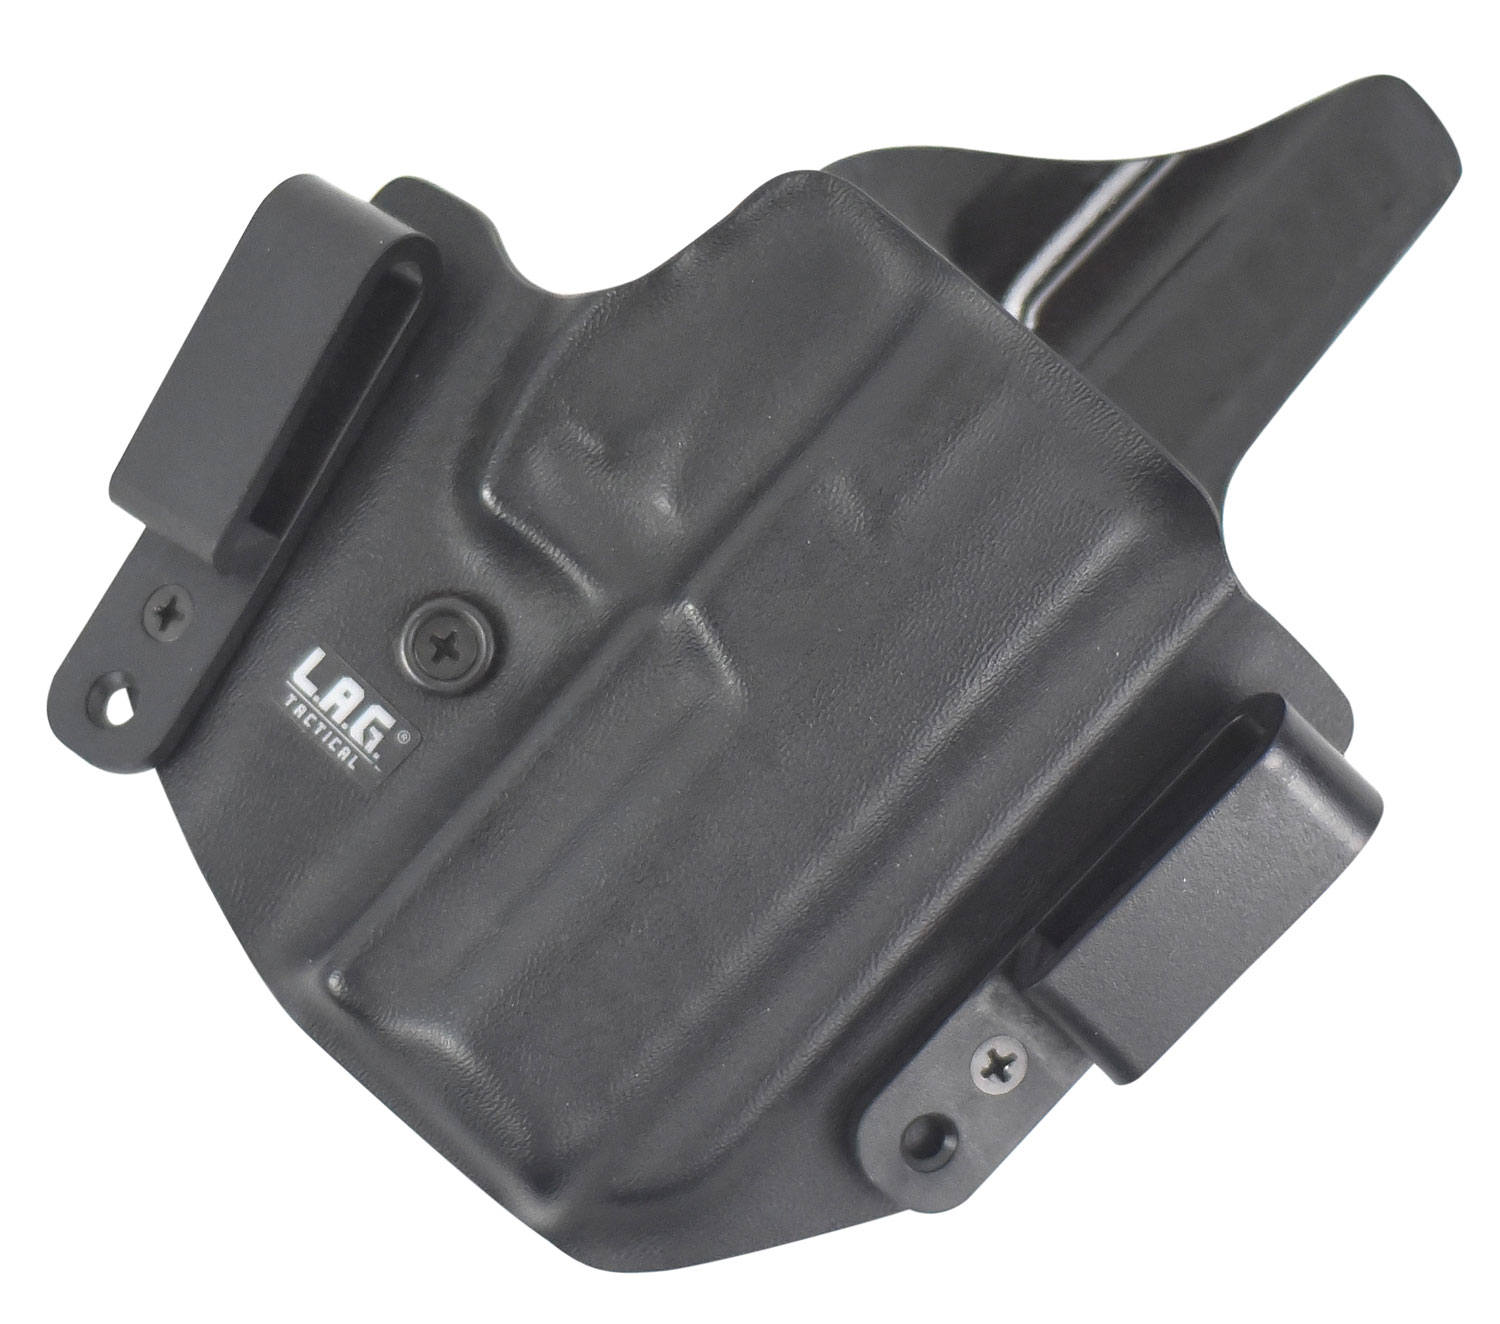 LAG TACTICAL INC 1001 Defender  Inside-Outisde-The-Waistband Holster Glock 19/23/32 Kydex Black